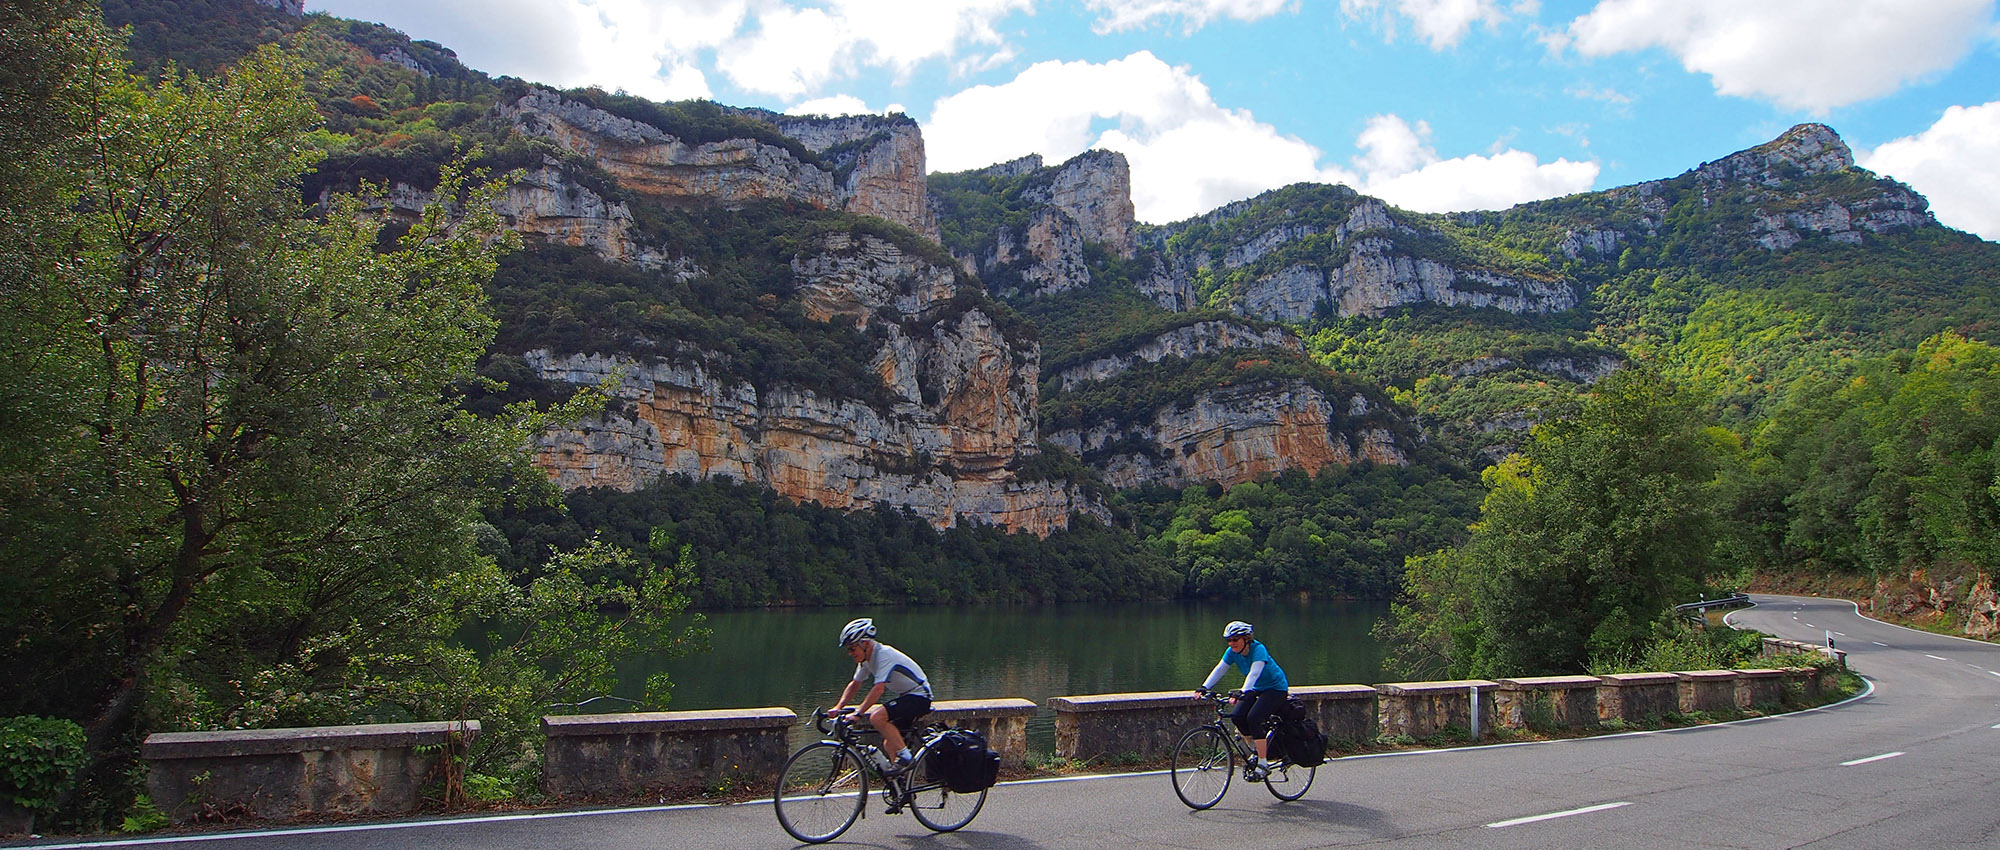 Ebro Gorge by the Embalse de Sobron